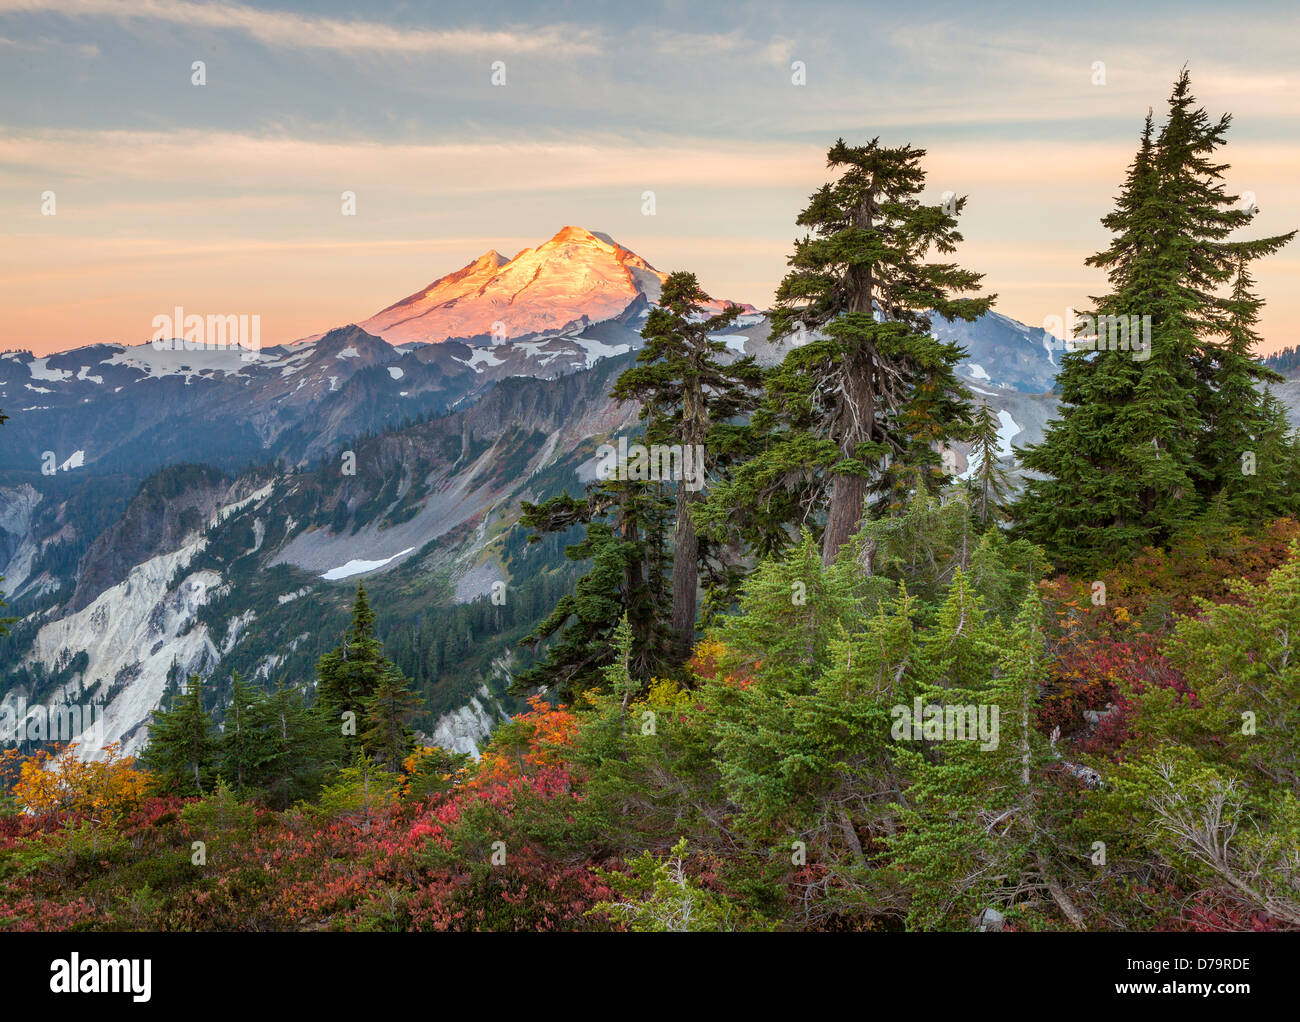 Mount Baker-Snoqualmie National Forest, WA: Mount Baker from Artists Ridge Trail, at sunrise - Stock Image